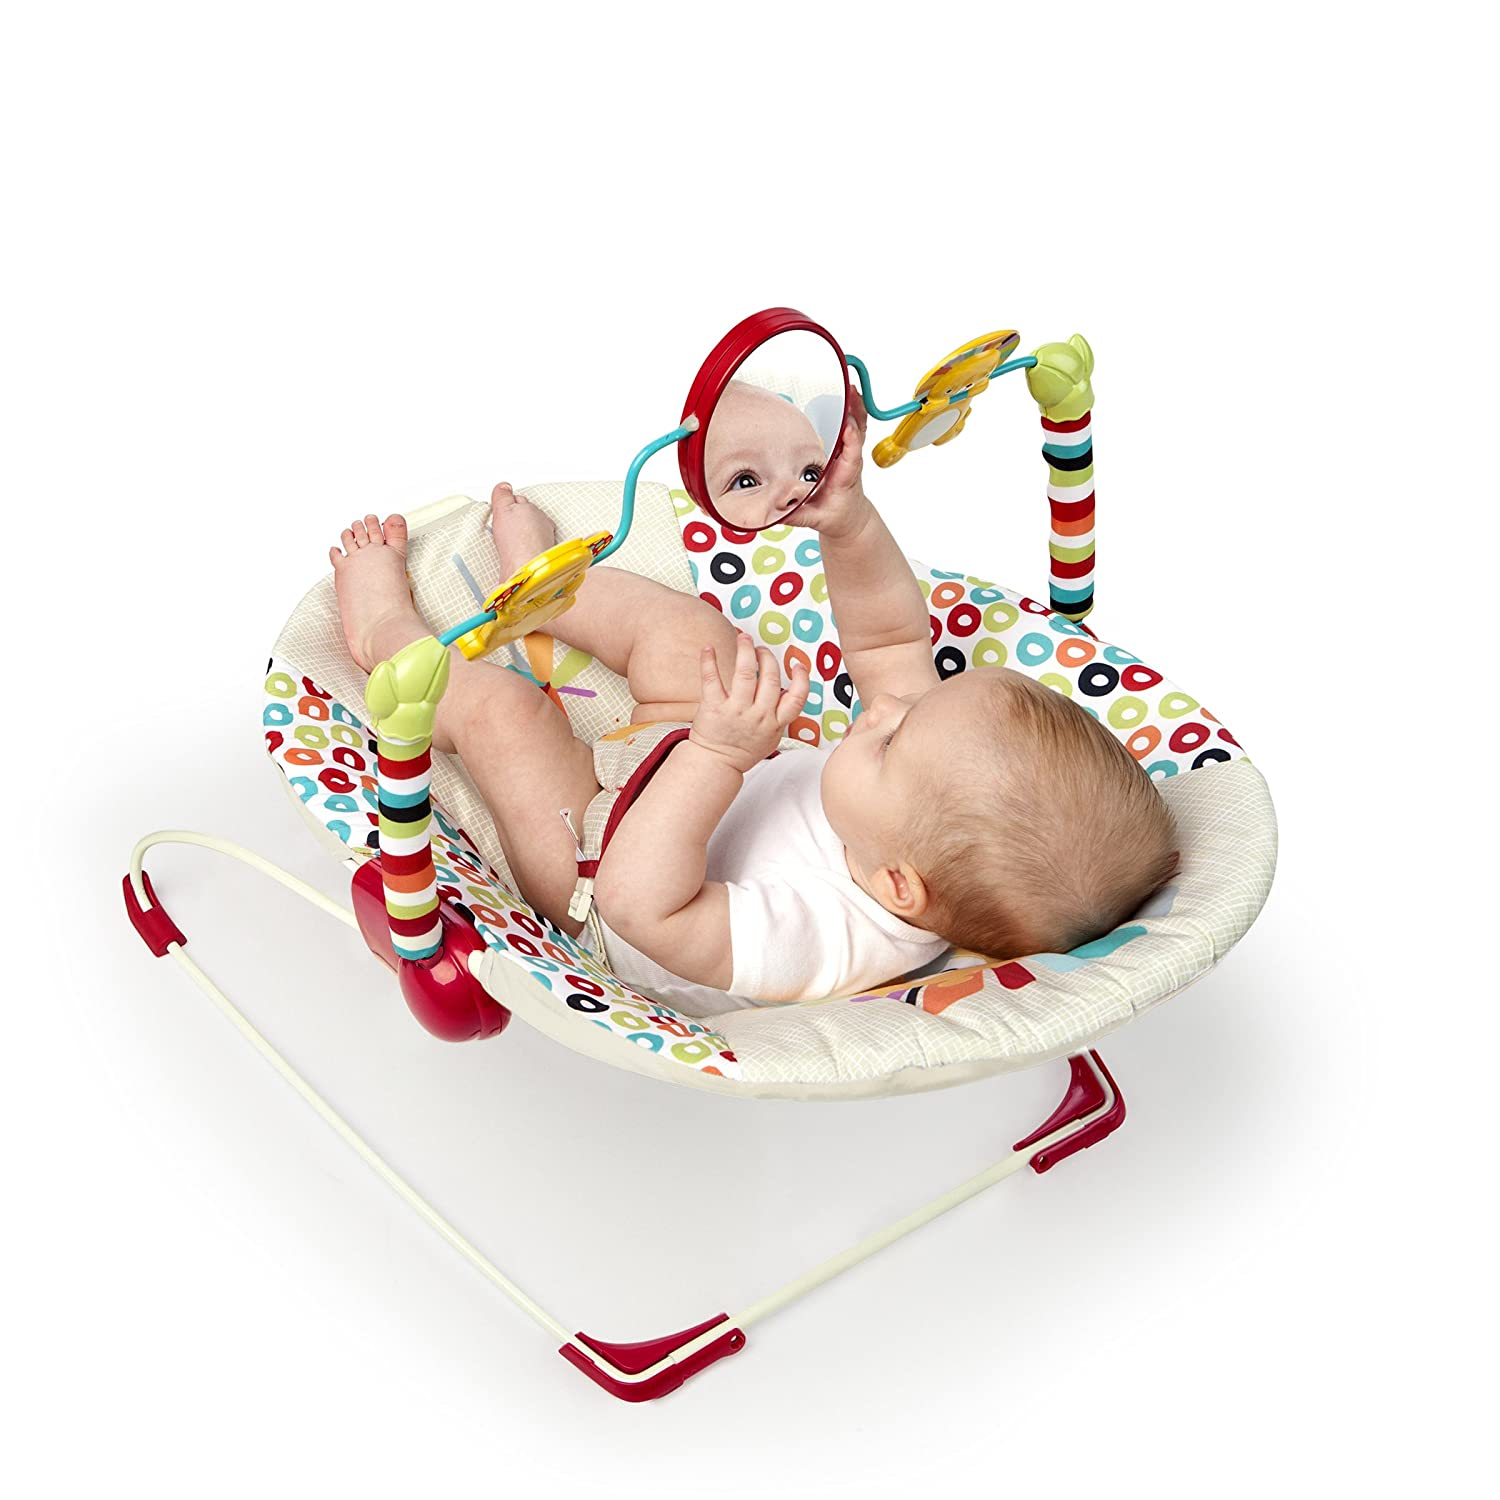 Baby Play Chair Baby Bouncer Chair Seat Soothing Vibration Interactive